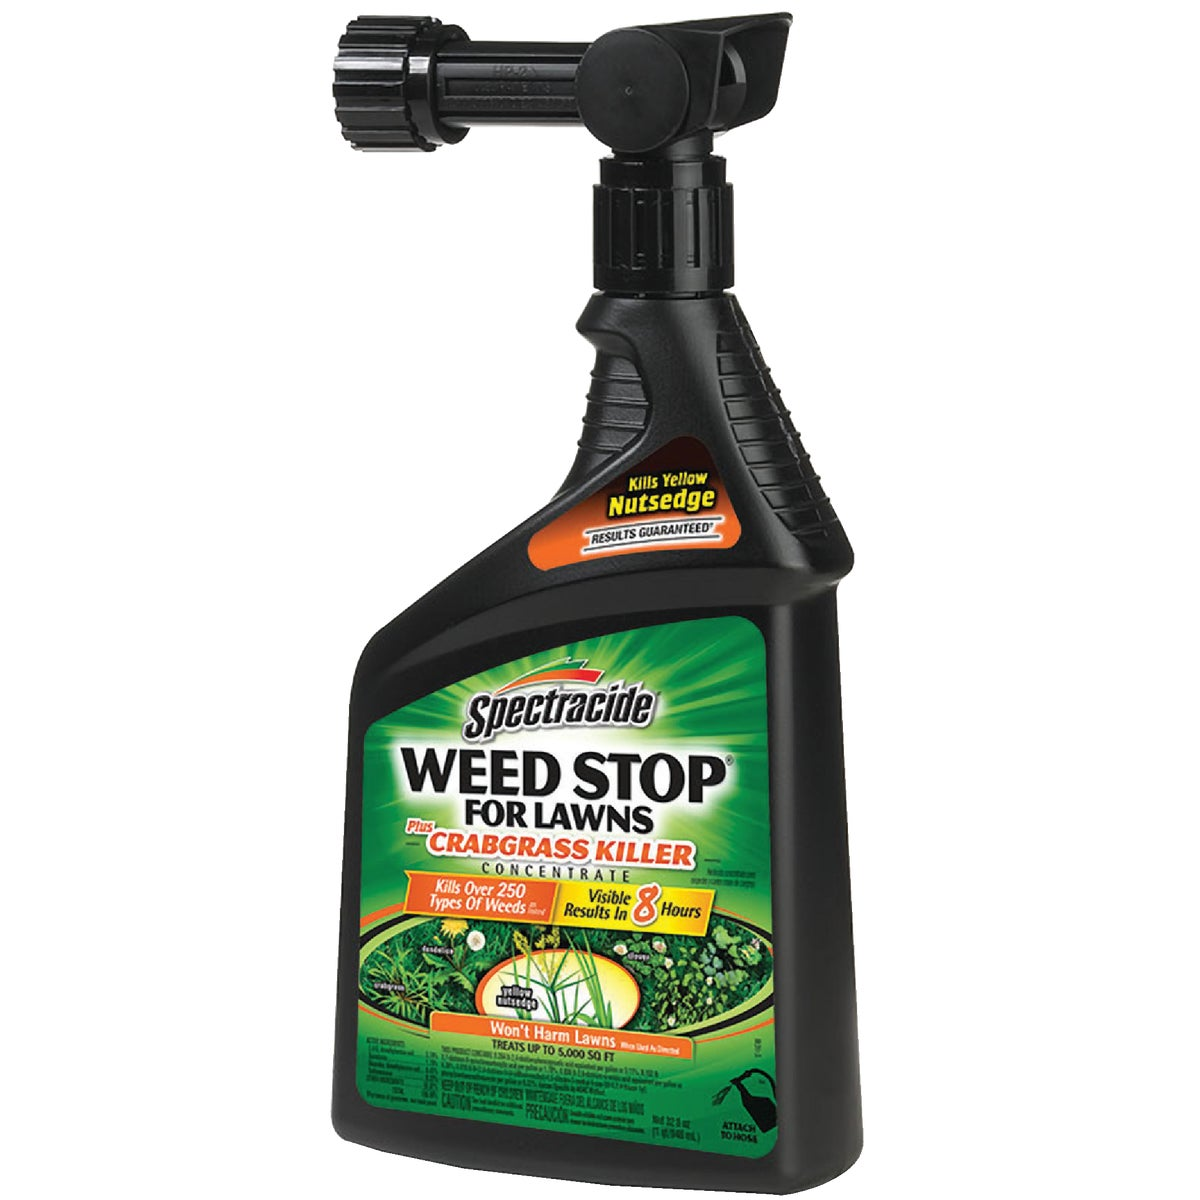 RTS W/CRAB WEED STOP - HG95703 by United Industries Co